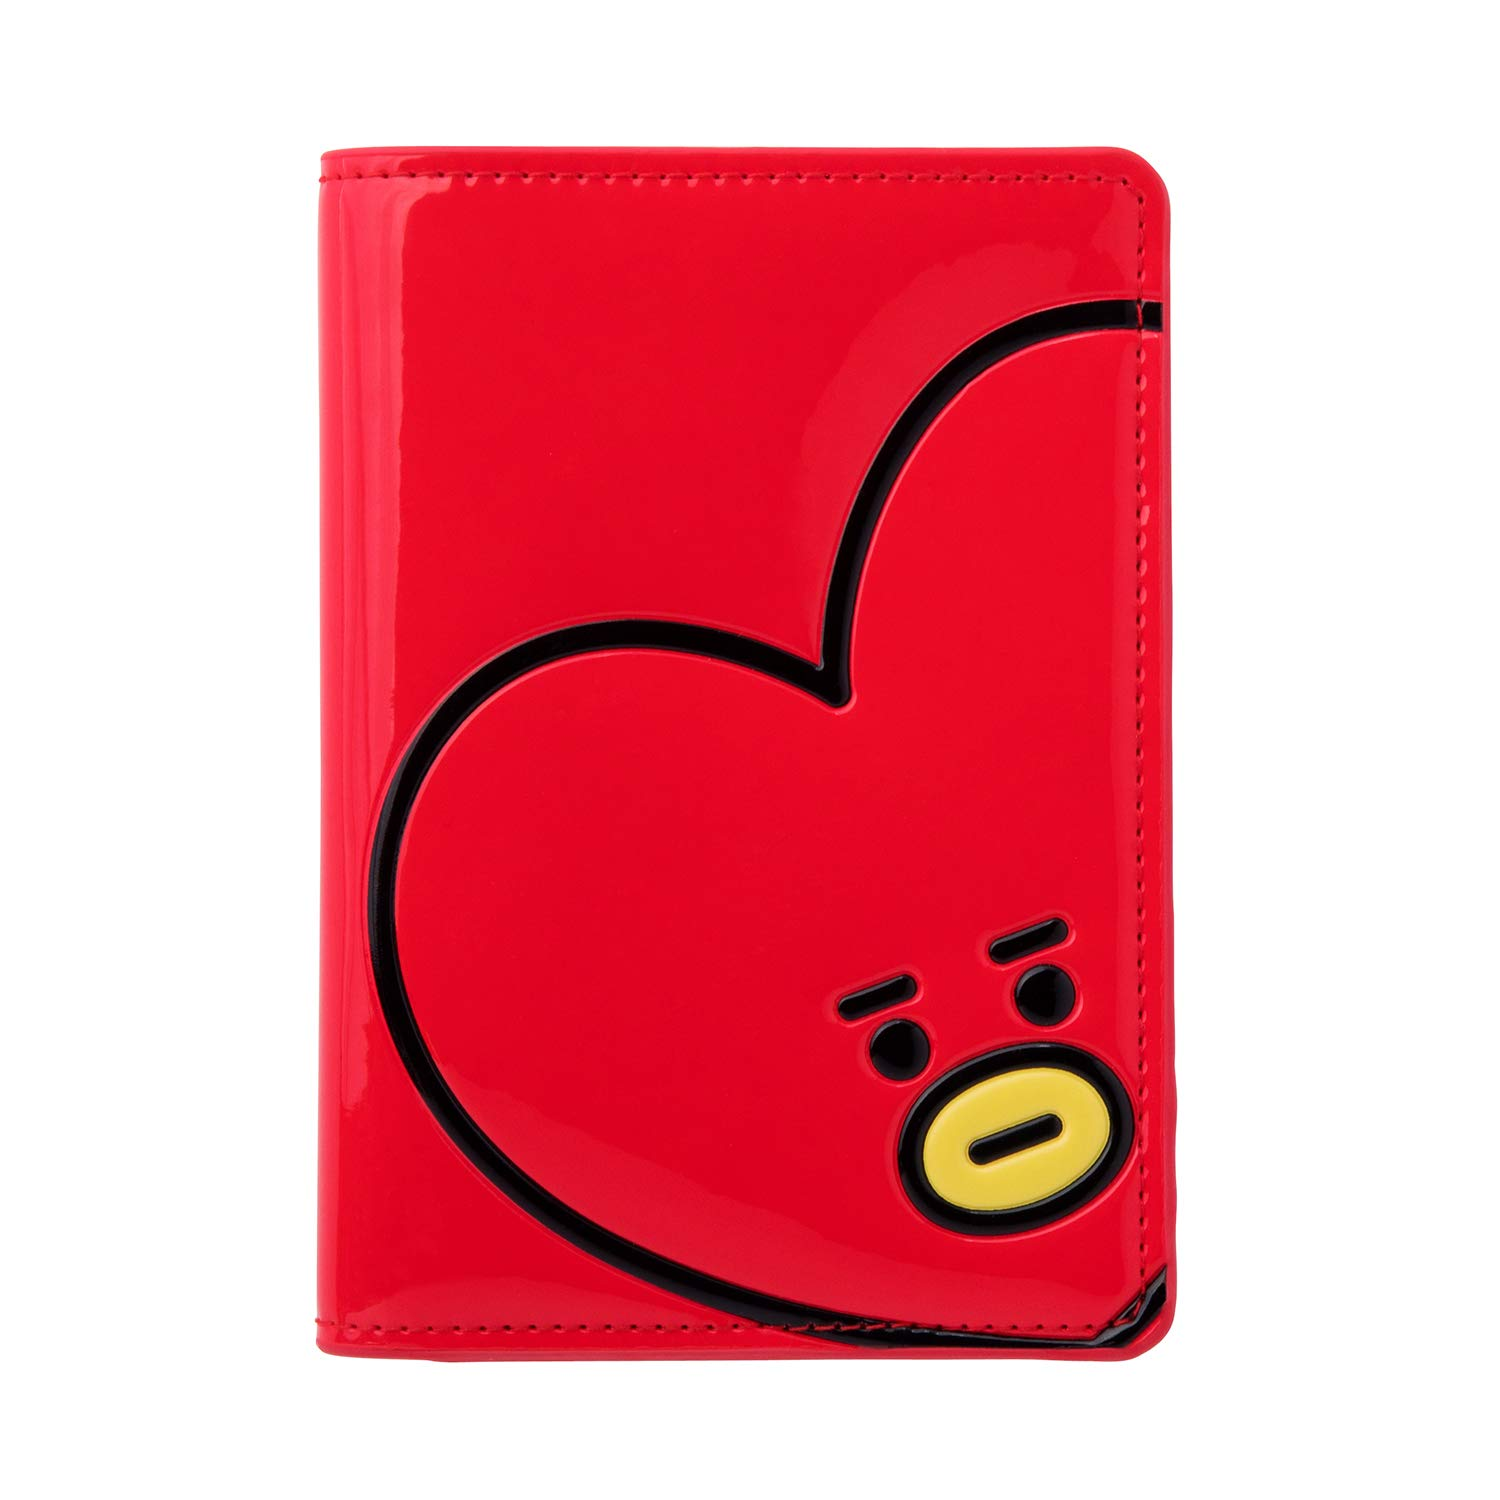 BT21 Official BTS Merchandise by Line Friends - TATA Character Enamel Passport Holder Cover (Designed by Bangtan Boys)